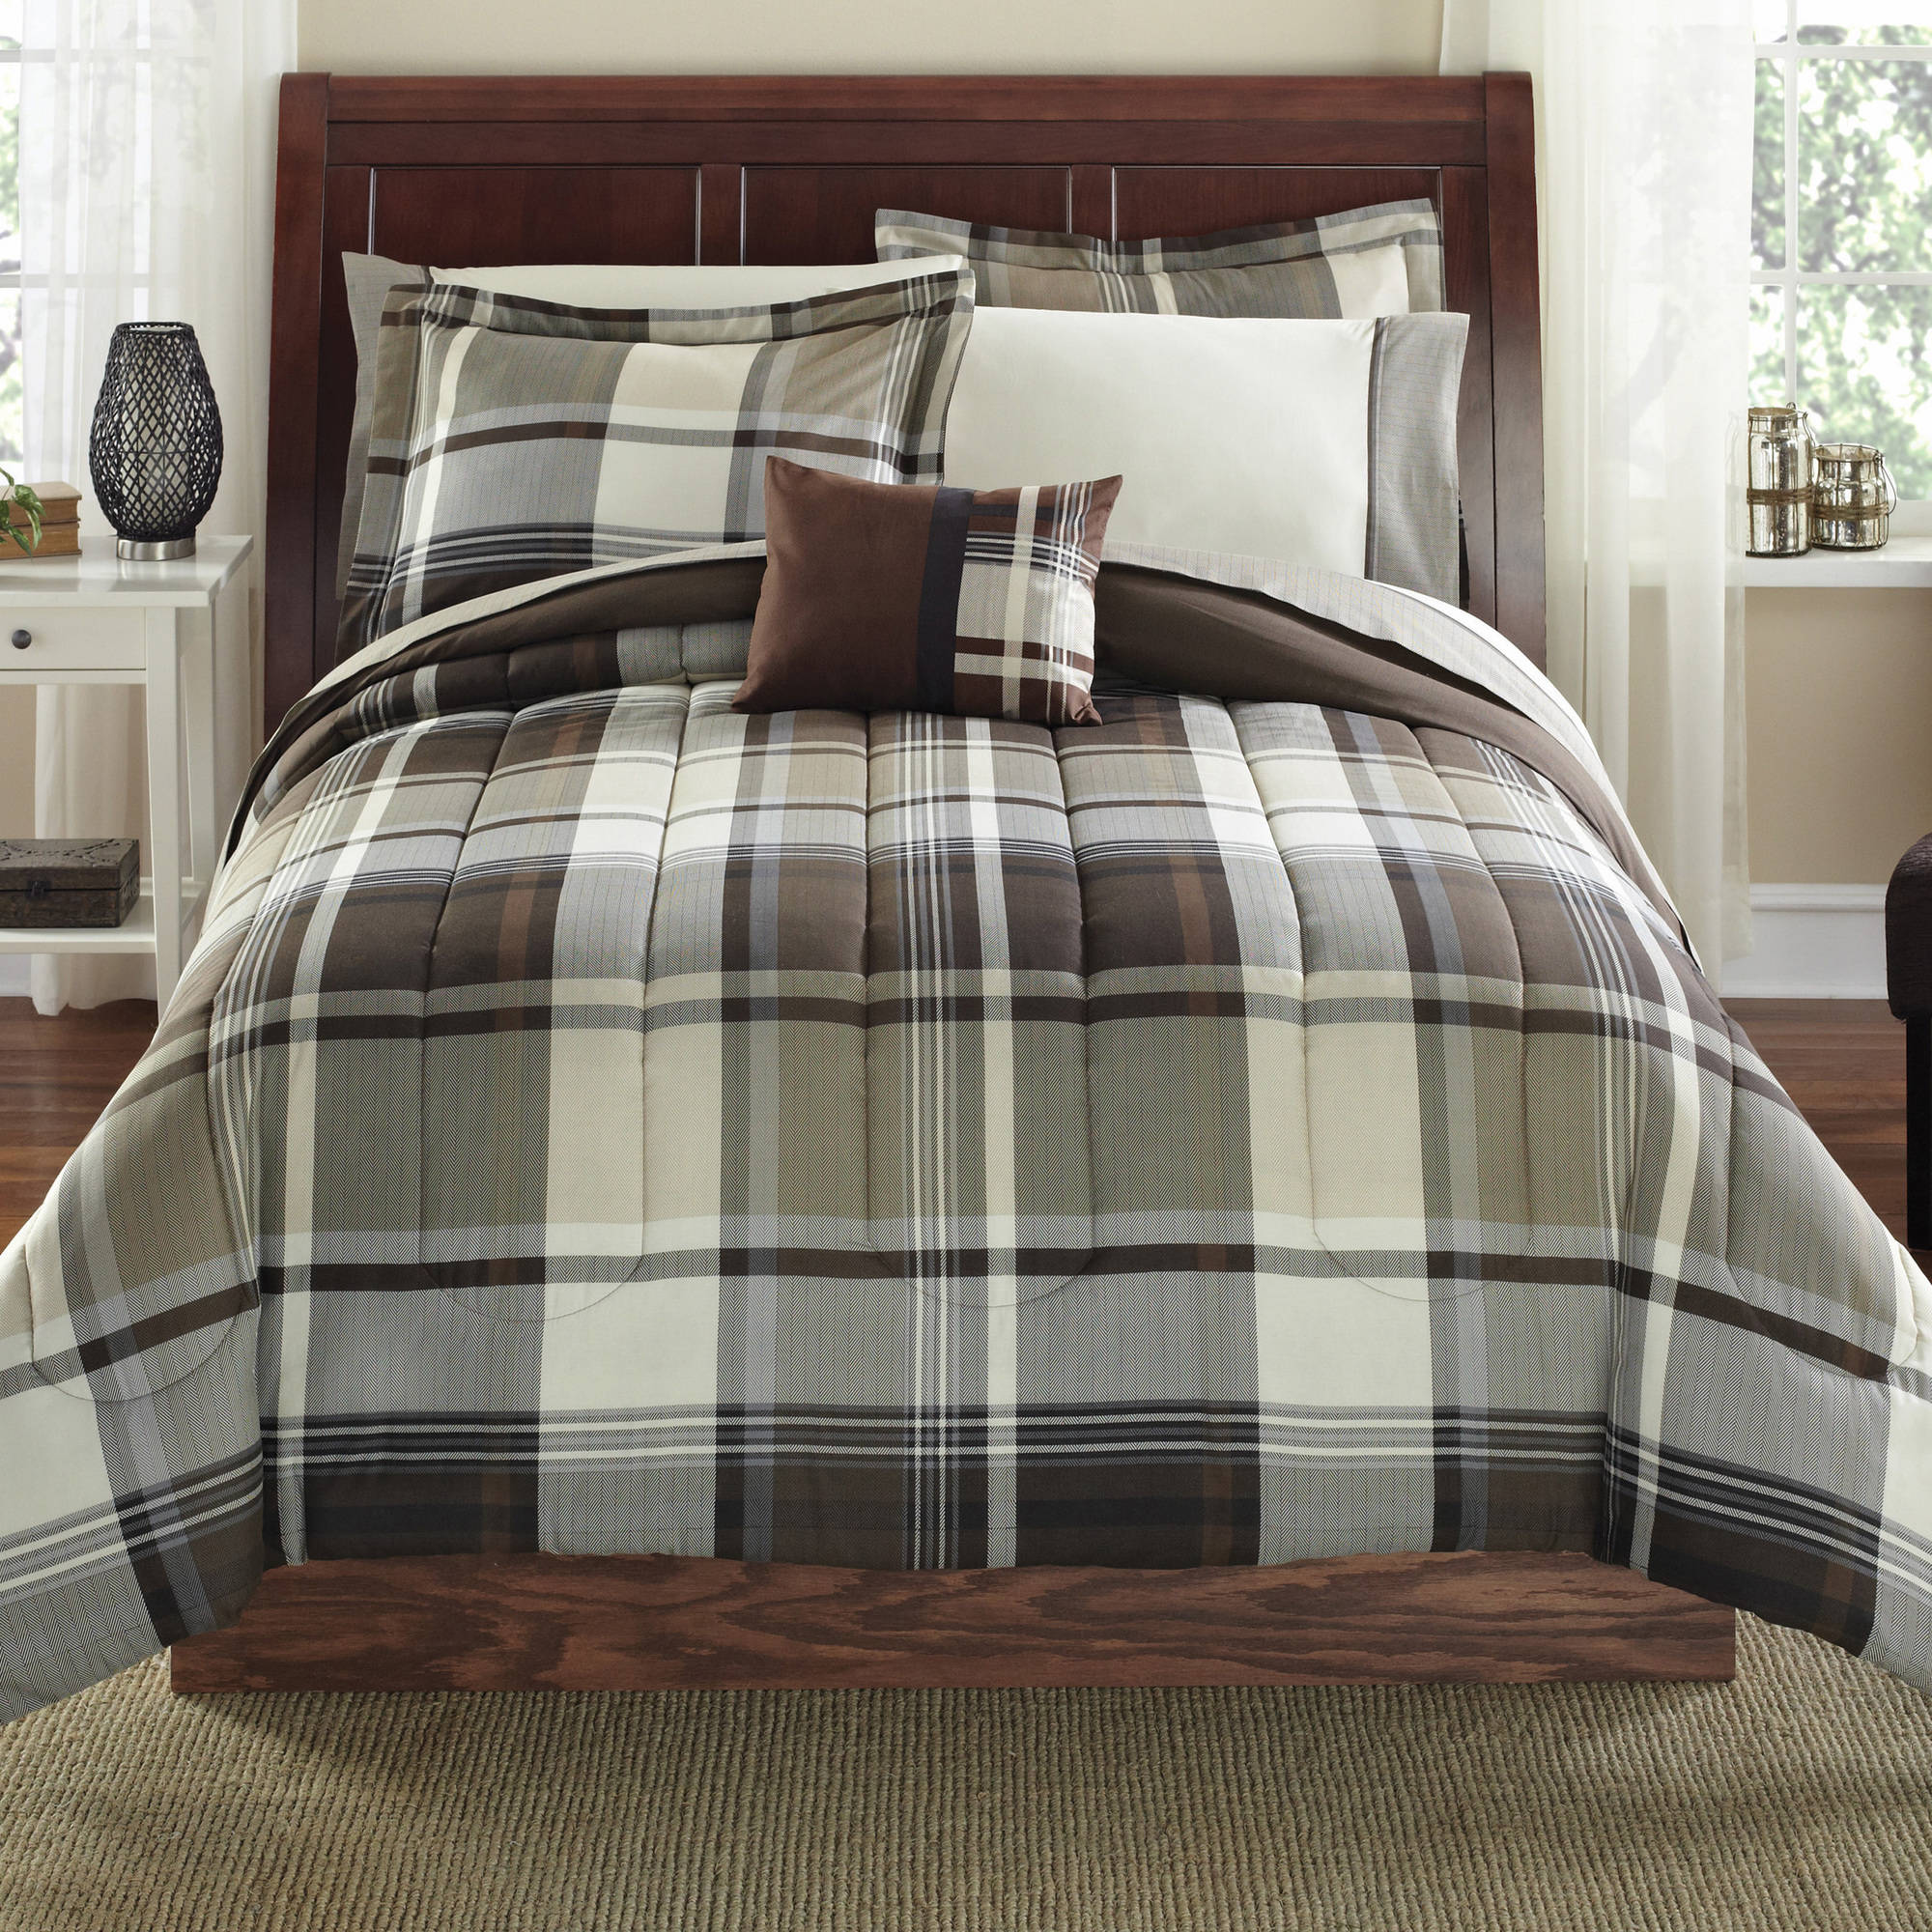 Mainstays Bed In A Bag Bedding Comforter Set Brown Plaid Multiple Sizes